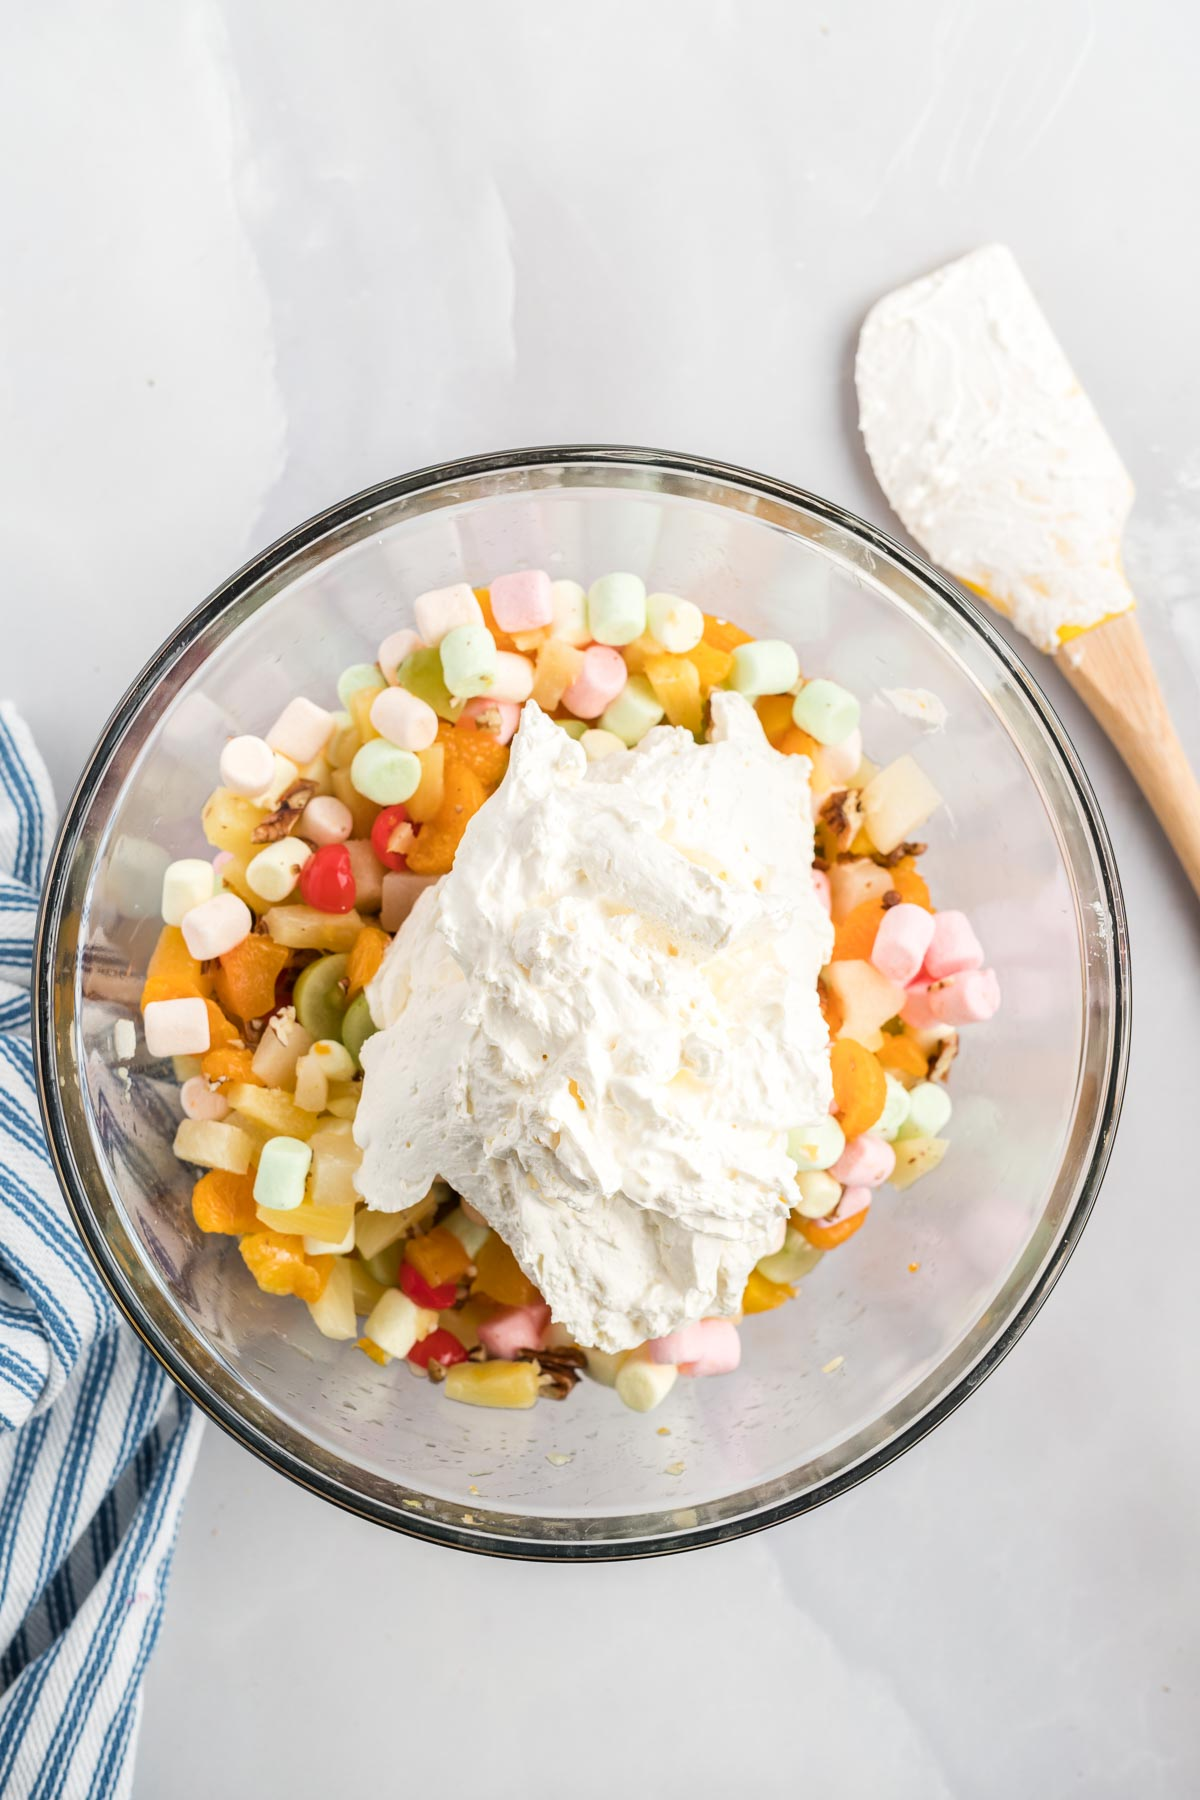 Cool whip added to a bowl of fruit, marshmallows and nuts.